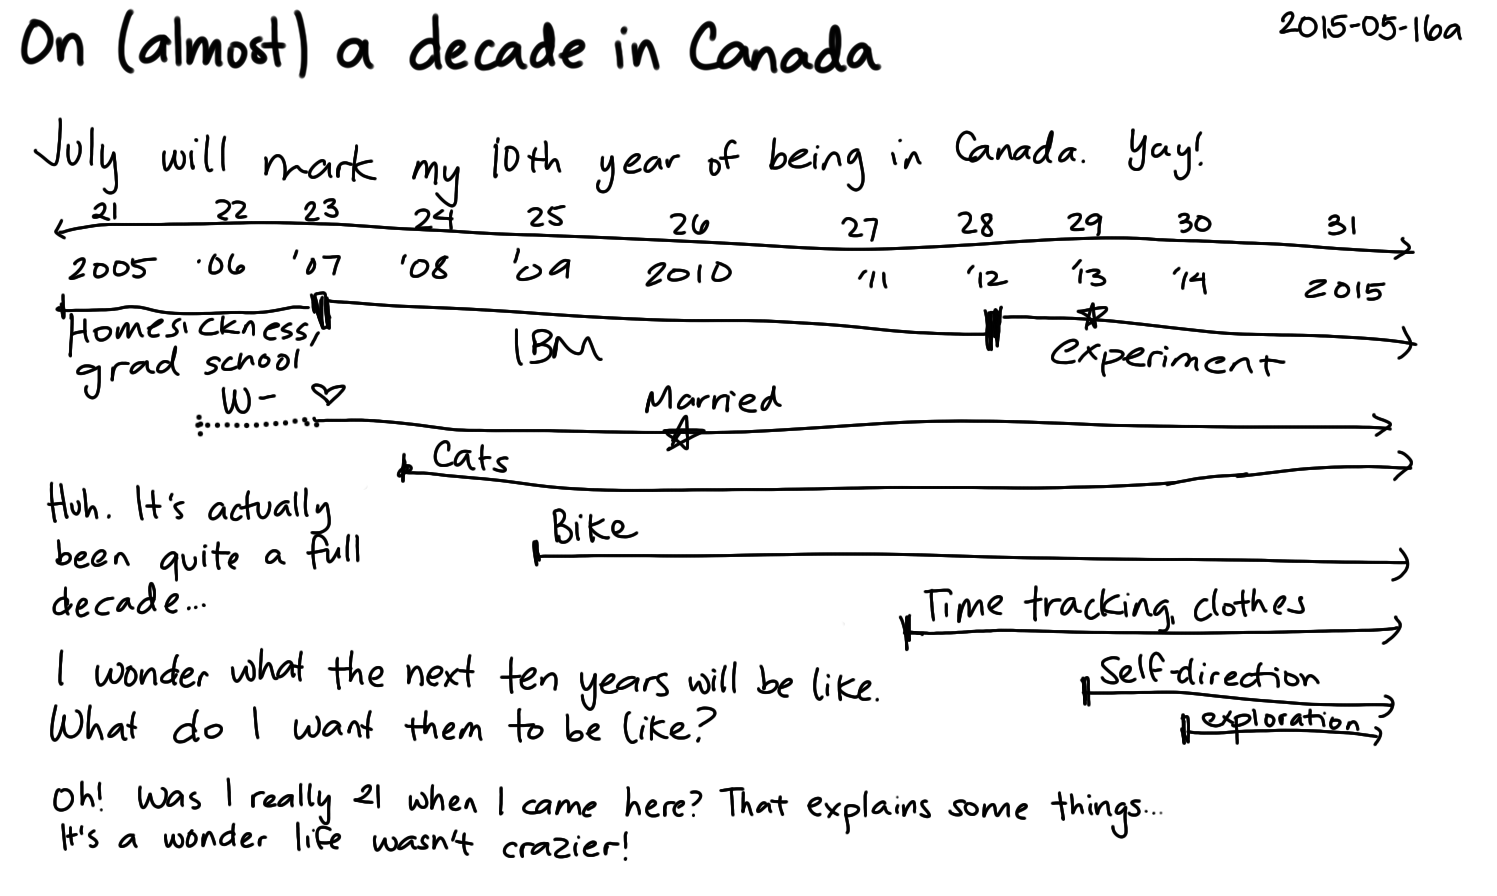 2015-05-16a On almost a decade in Canada -- index card #canada #decade #long-term #timeline.png